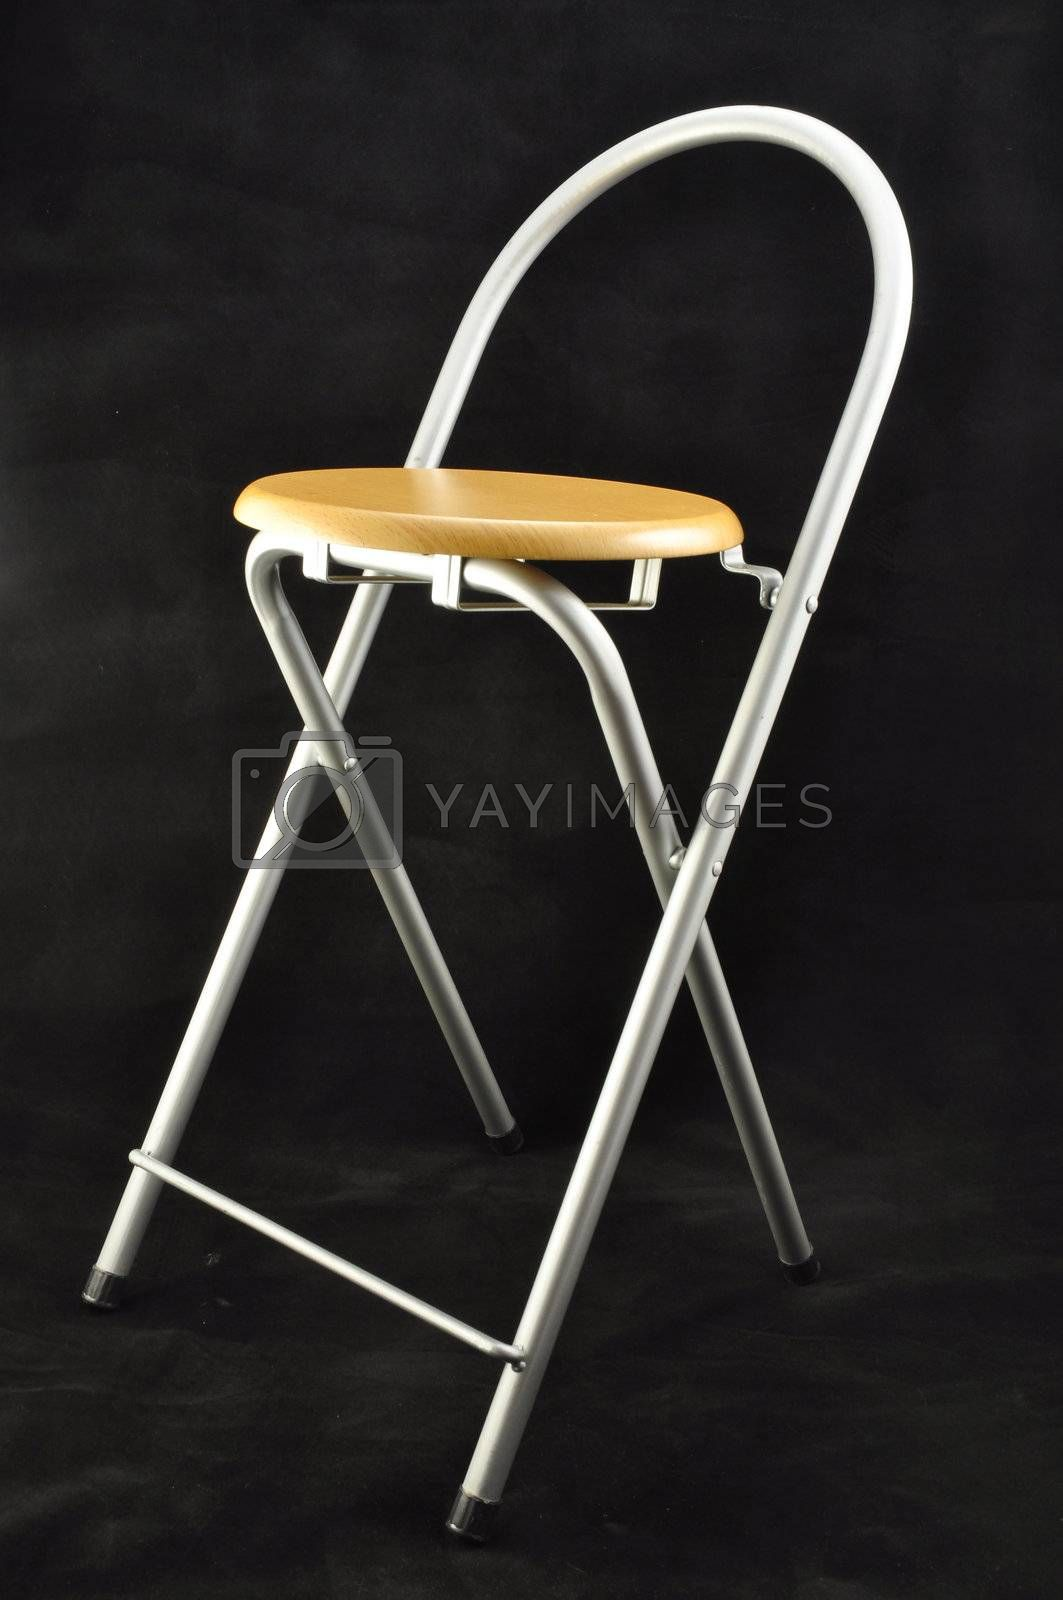 wooden folding stool chiaroe steel on a black background